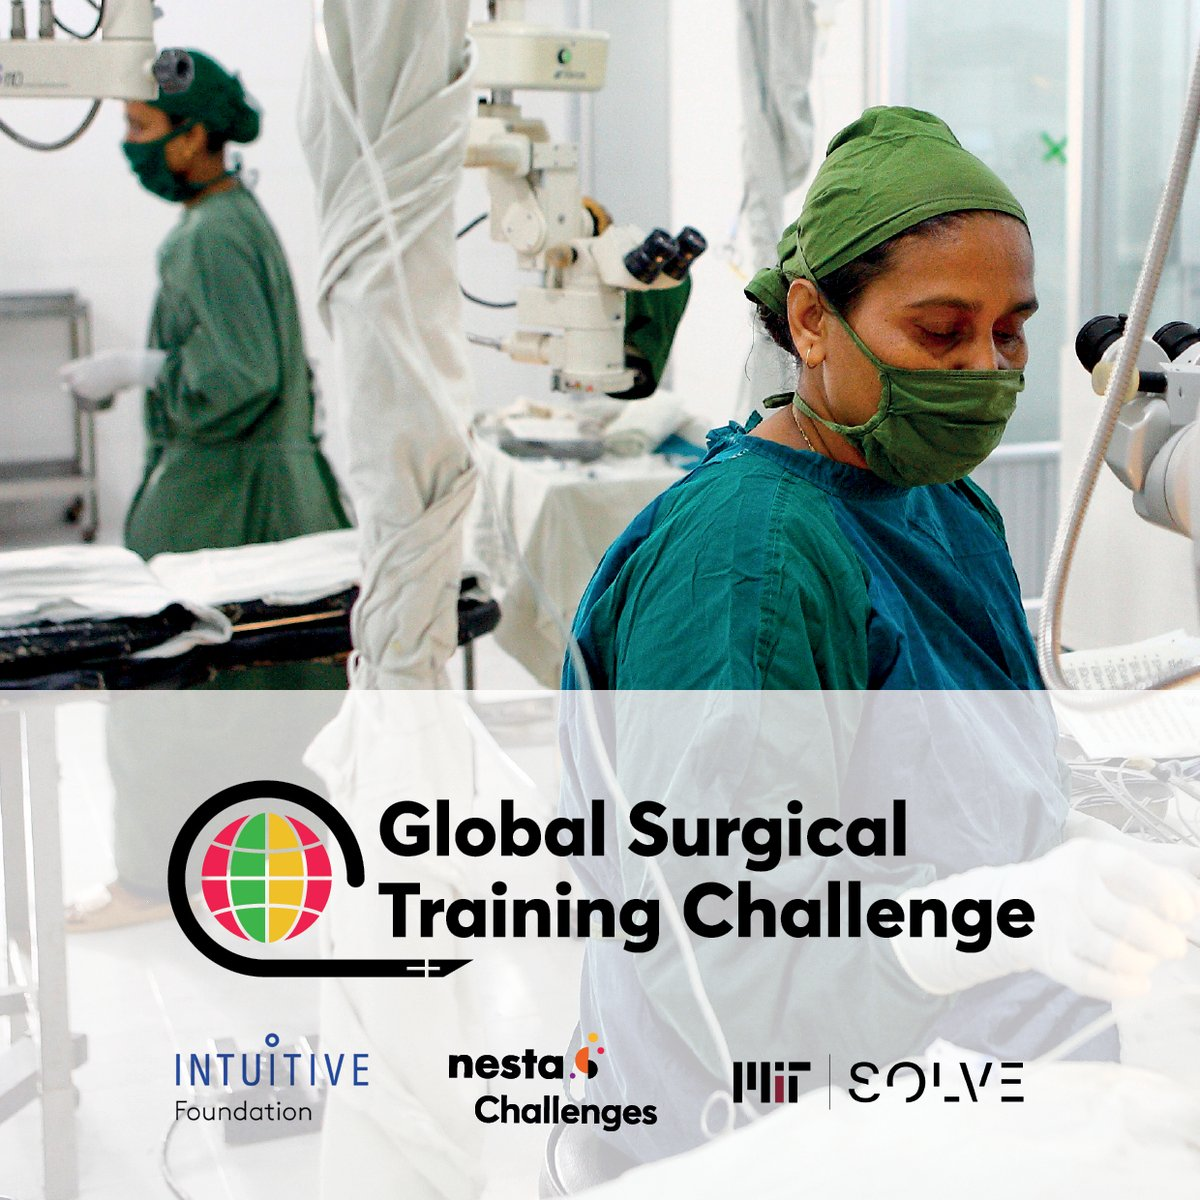 Are you a #surgeon, #anaesthetist, #nurse, #midwife, #engineer, or #designer interested in #education, #training or #simulation? Then check out our new Global Surgical Training Challenge https://t.co/atVdOPJNn9 #surgicaltrainingchallenge #surgery #anaesthesia #engineering https://t.co/bbz5FU5djM